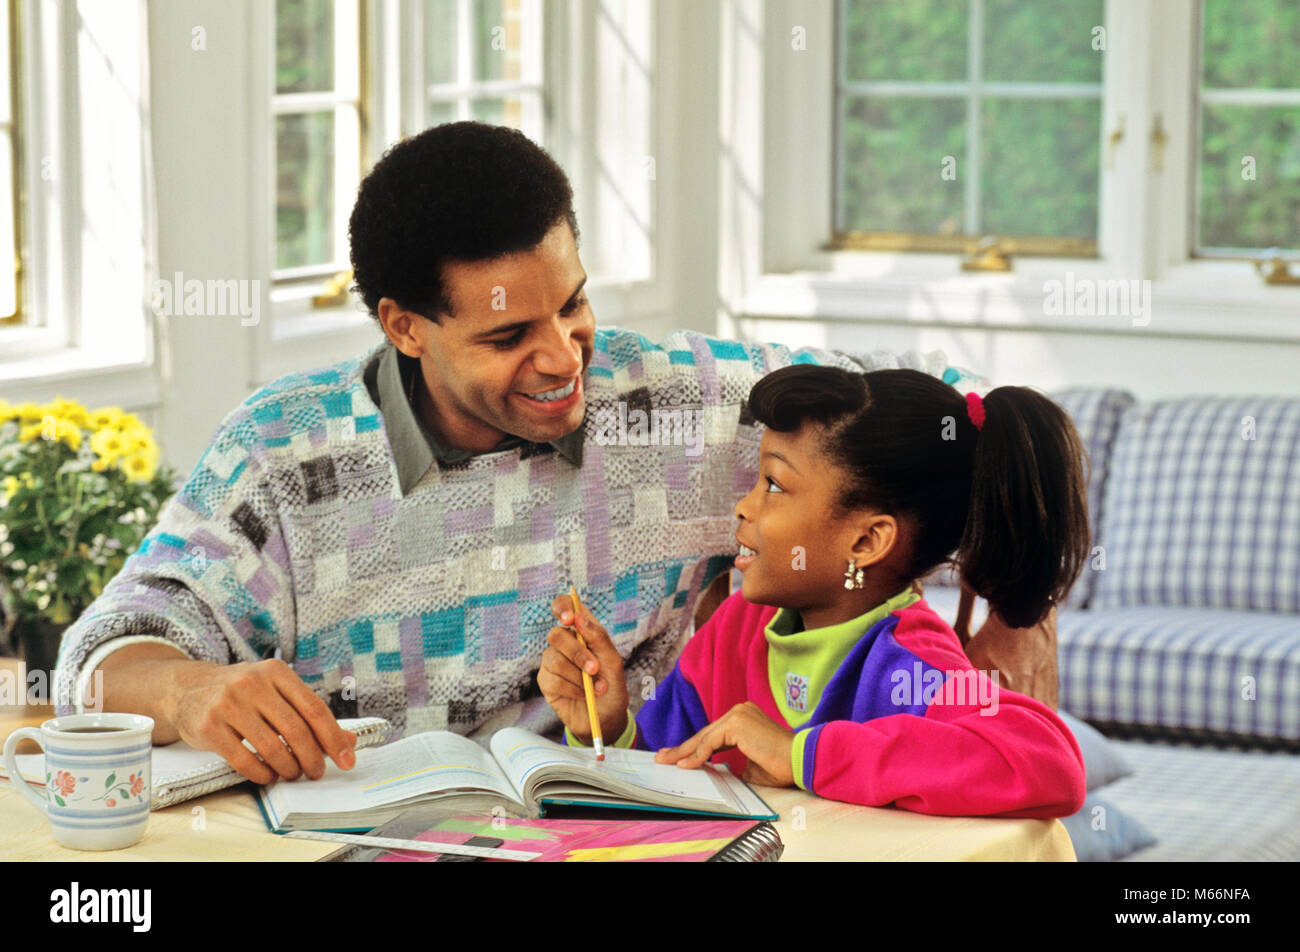 1990s AFRICAN AMERICAN FATHER HELPING DAUGHTER WITH HER HOMEWORK - ks32123 DEG002 HARS FEMALES HOME LIFE COPY SPACE - Stock Image